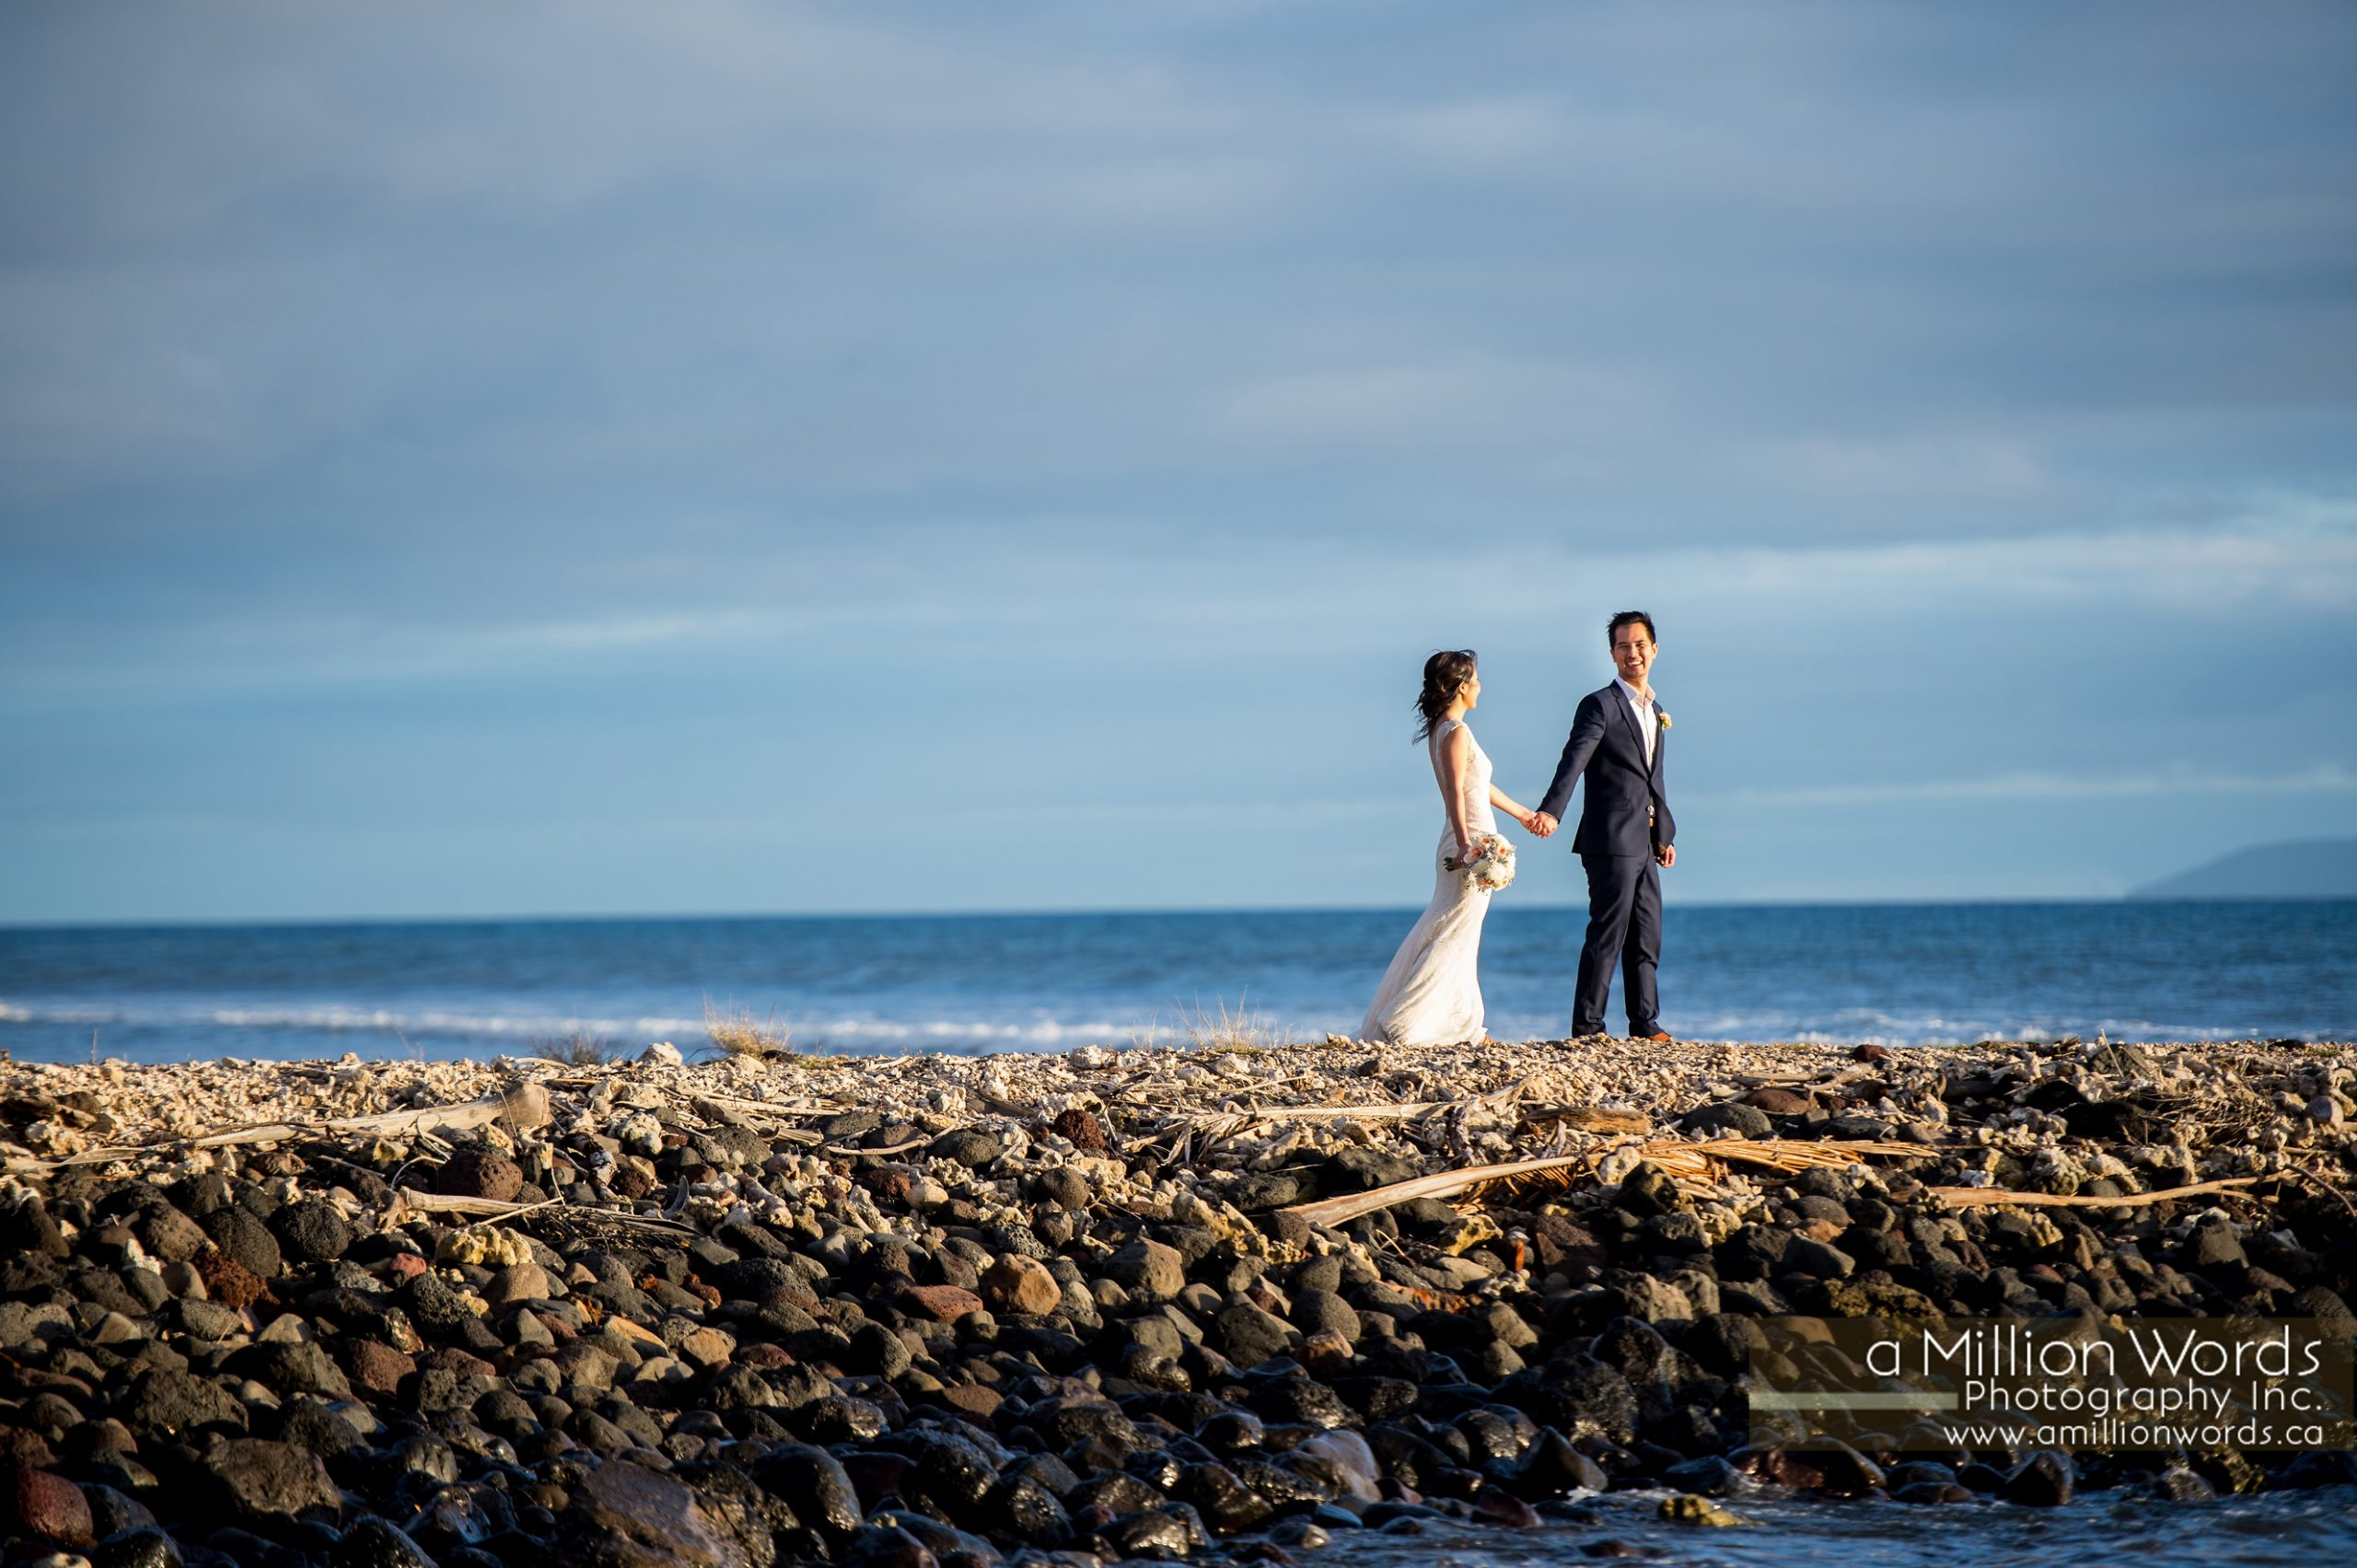 kw_destination_wedding_photography41